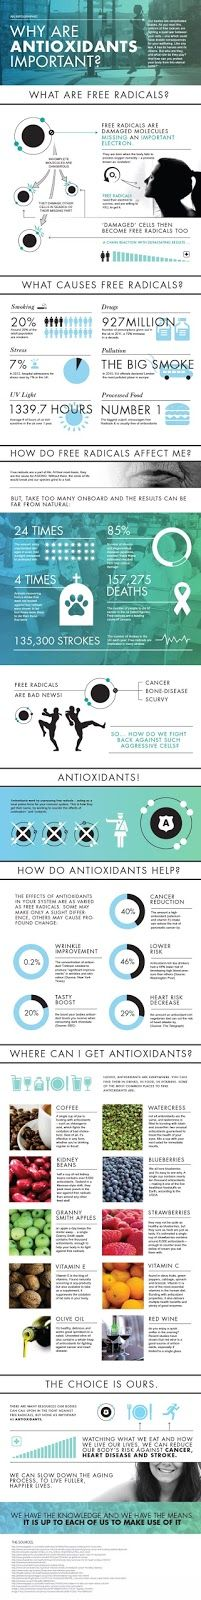 BIO E® World: Why are antioxidants Important